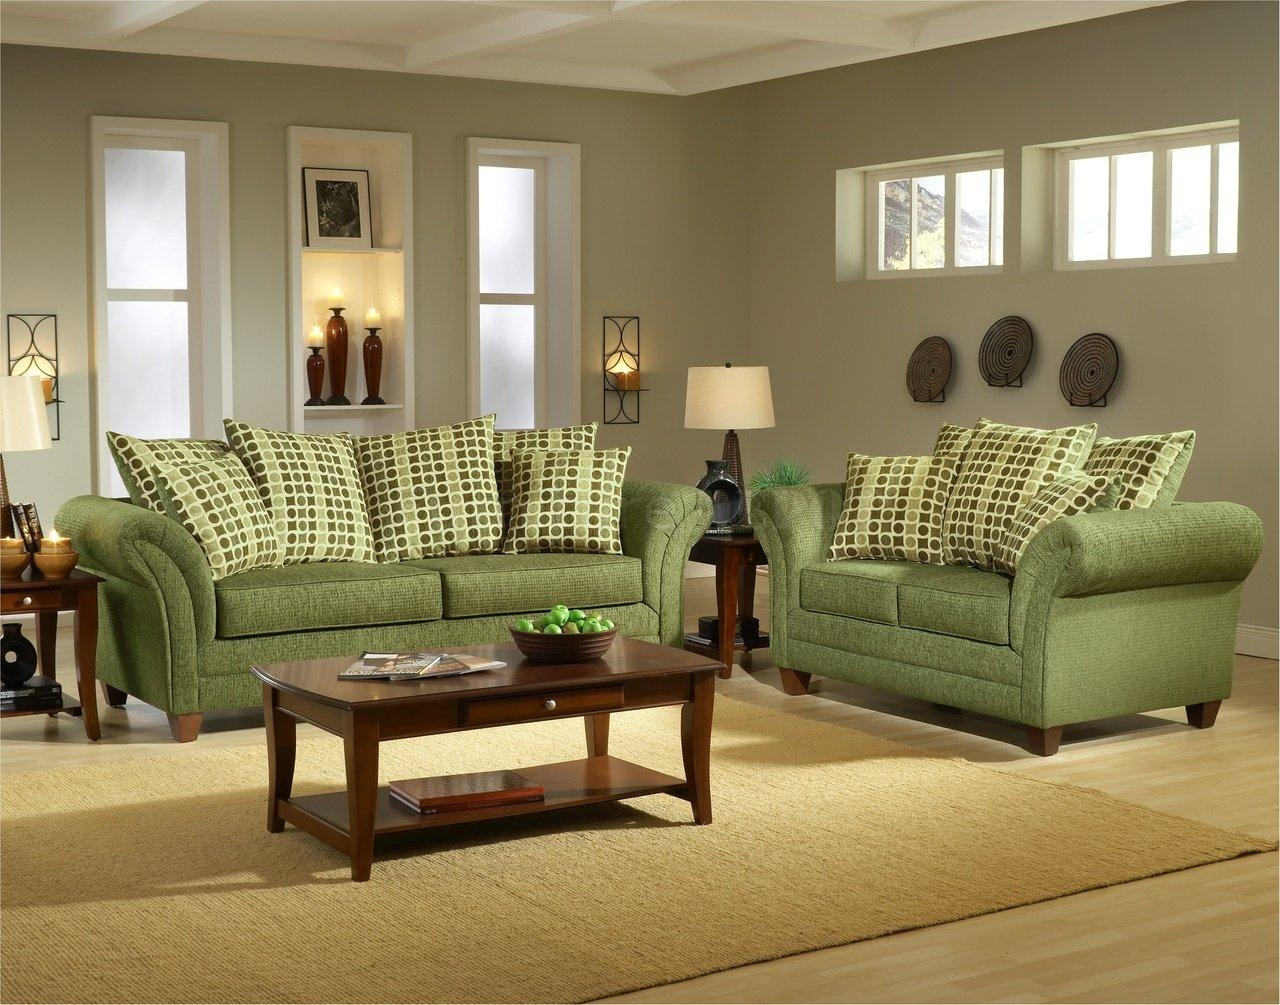 Green Sofas Friendly Touch | Home Conceptor With Regard To Green Sofas (View 4 of 20)